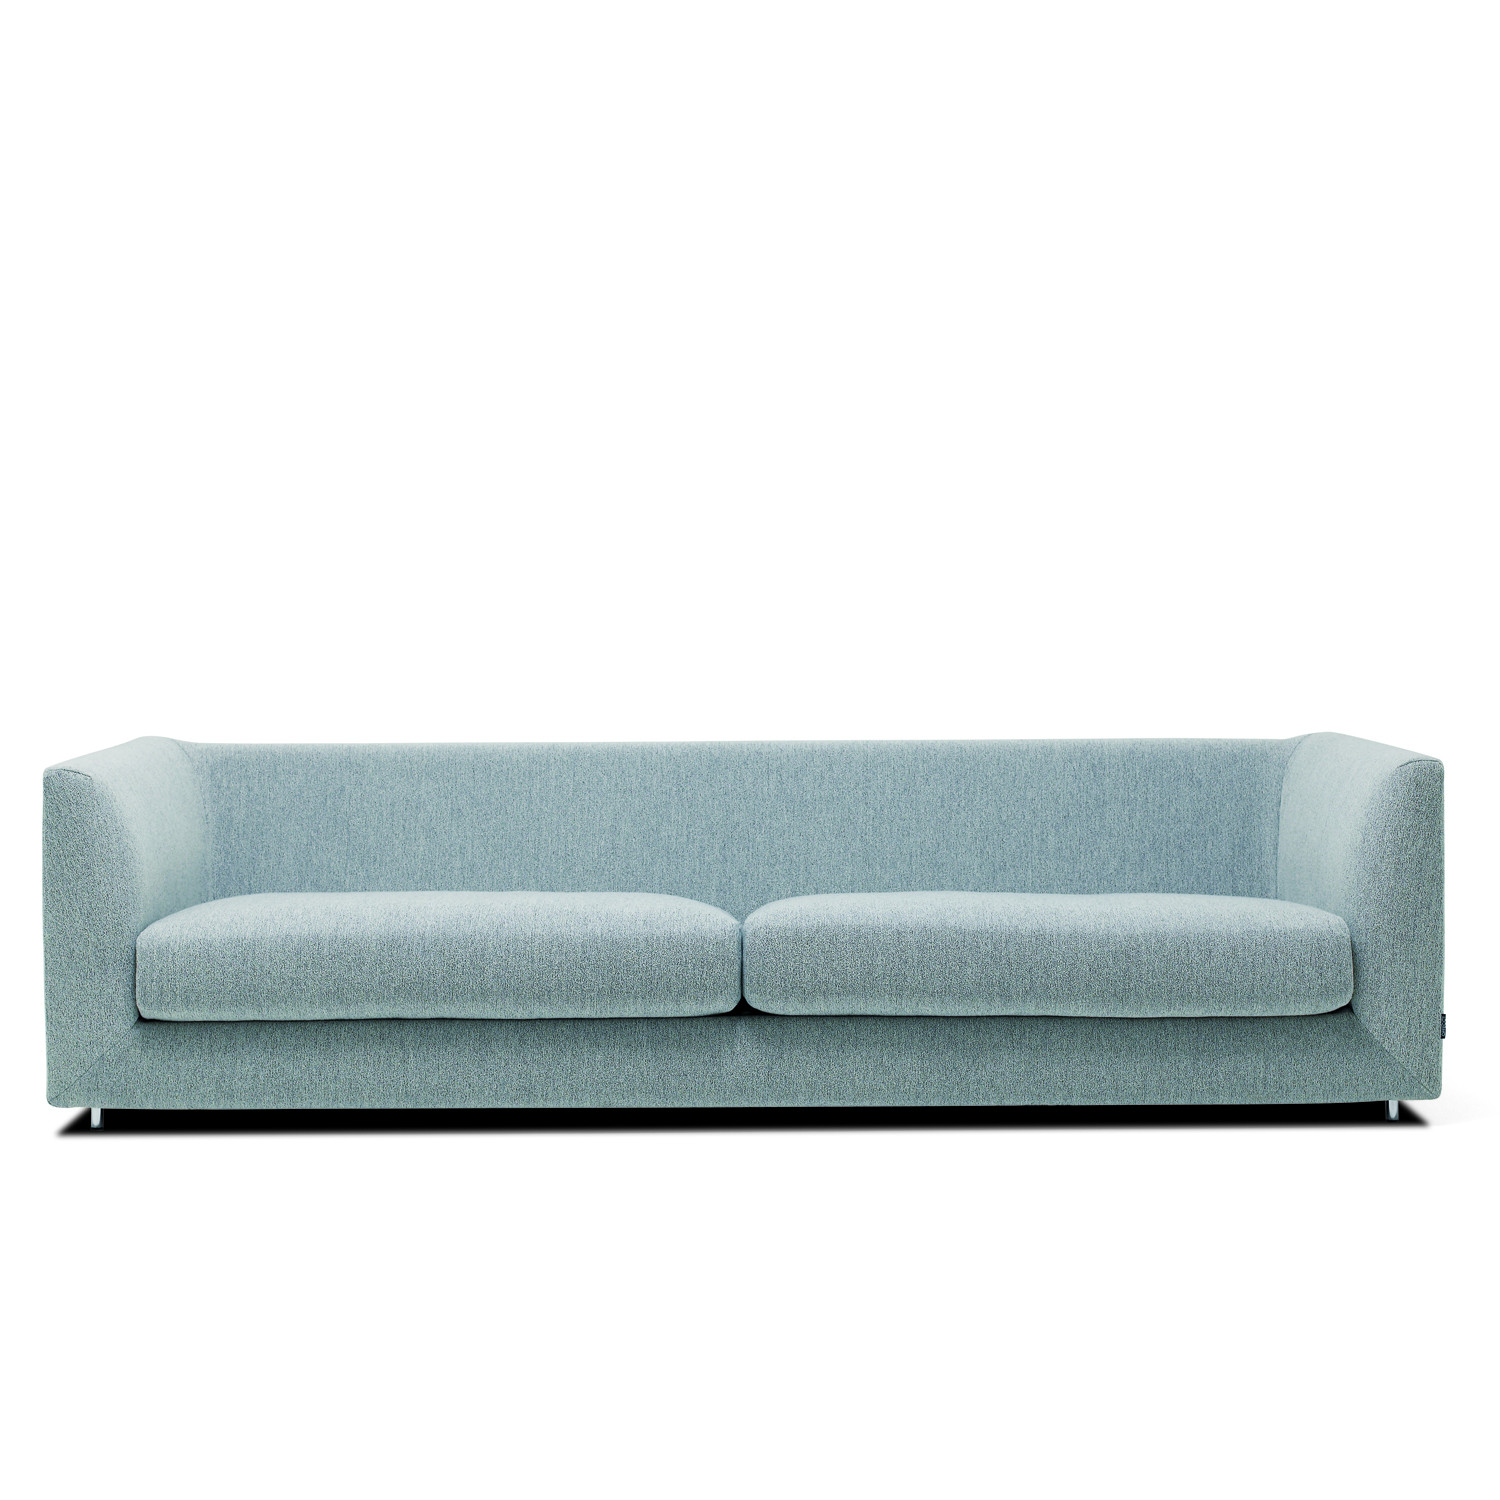 Nemo Sofa and Armchair by Offecct